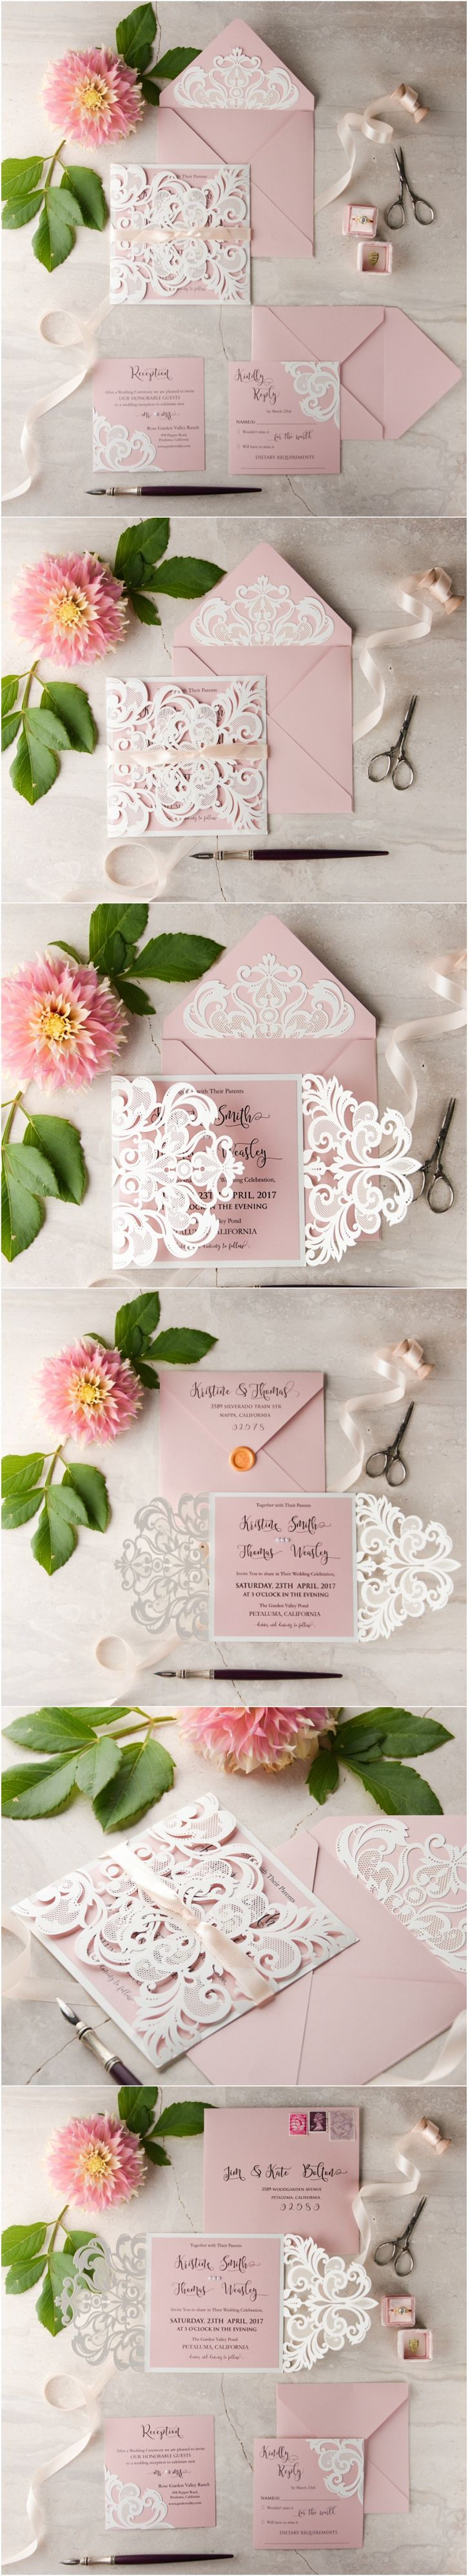 White & Pink Elegant Romantic Wedding invitation - laser cut lace and wax sealed envelope #weddinginvitations #romantic #weddingideas